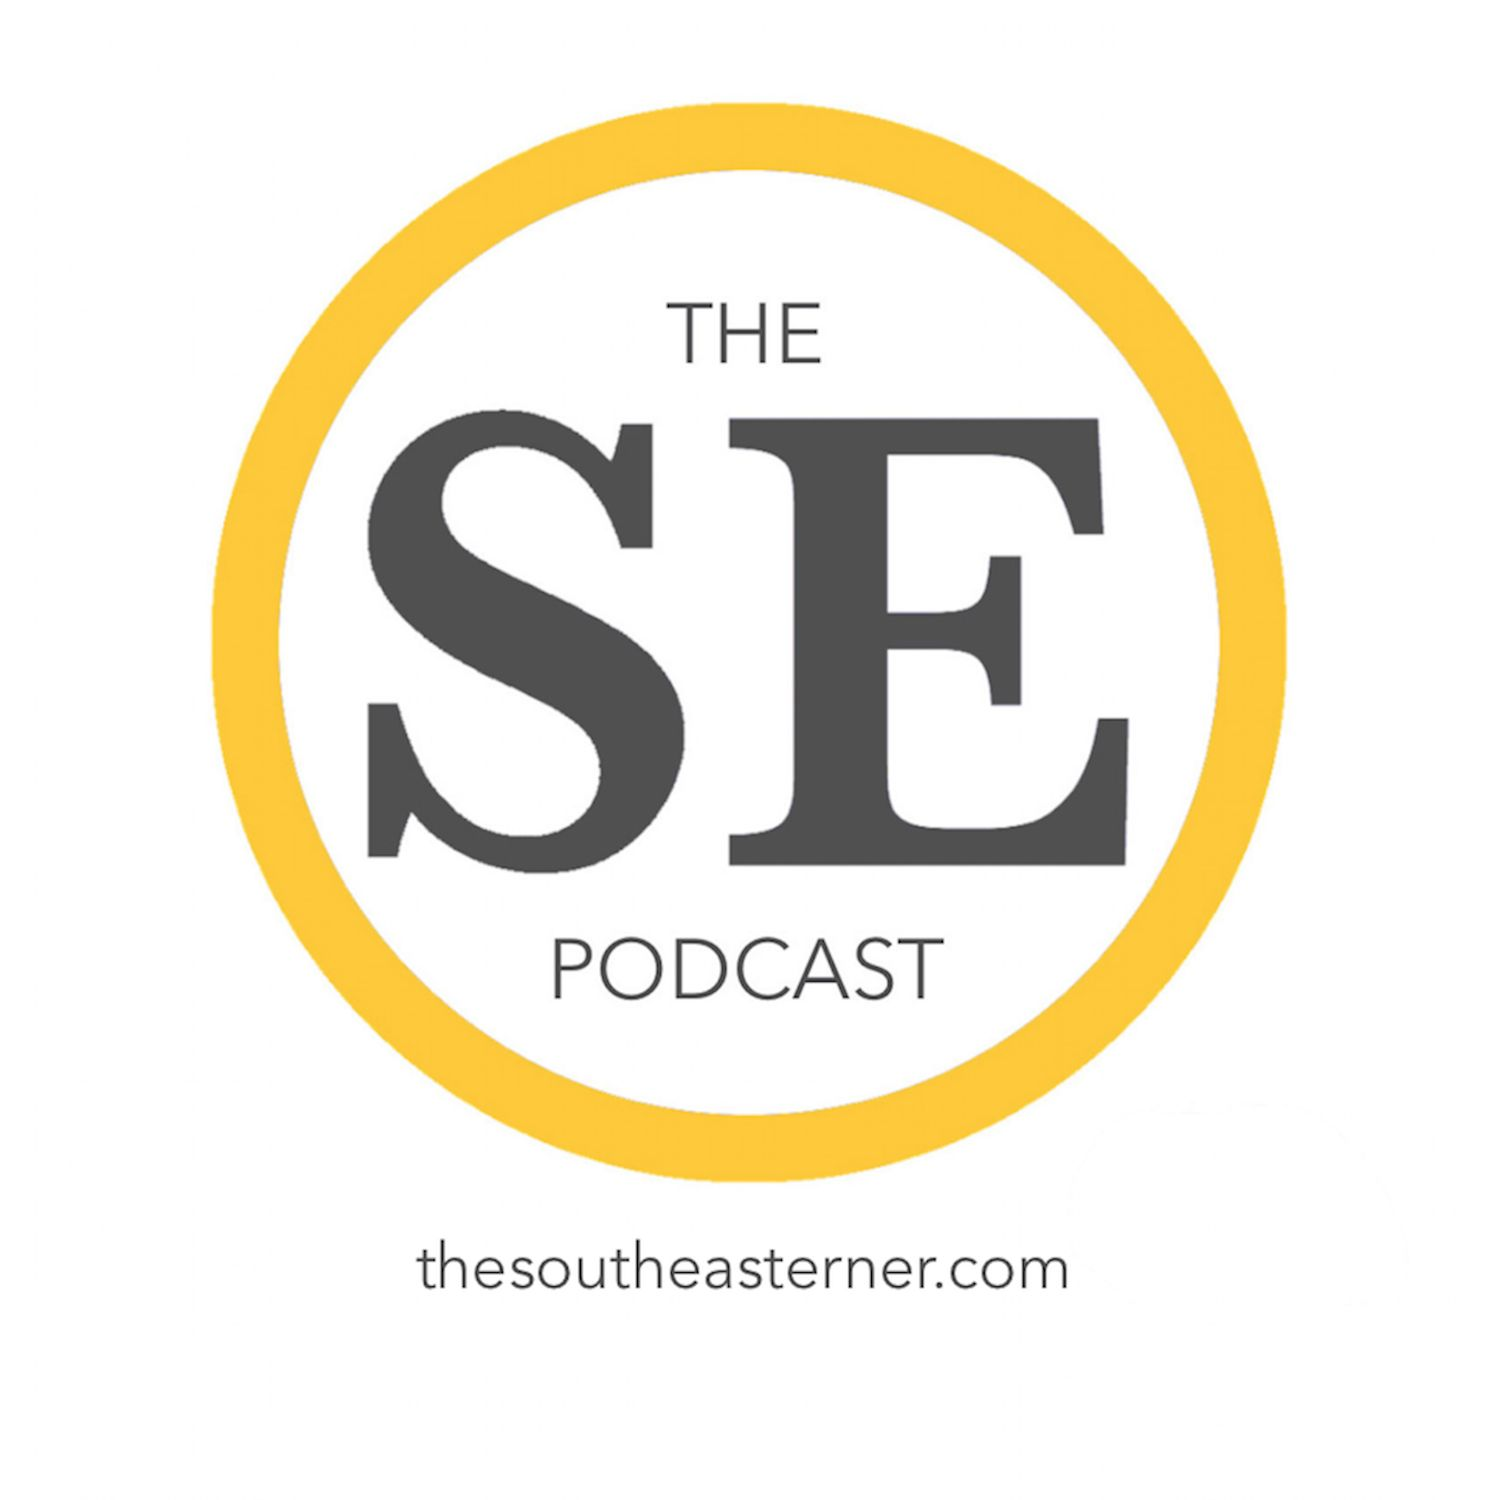 The Southeasterner Podcast